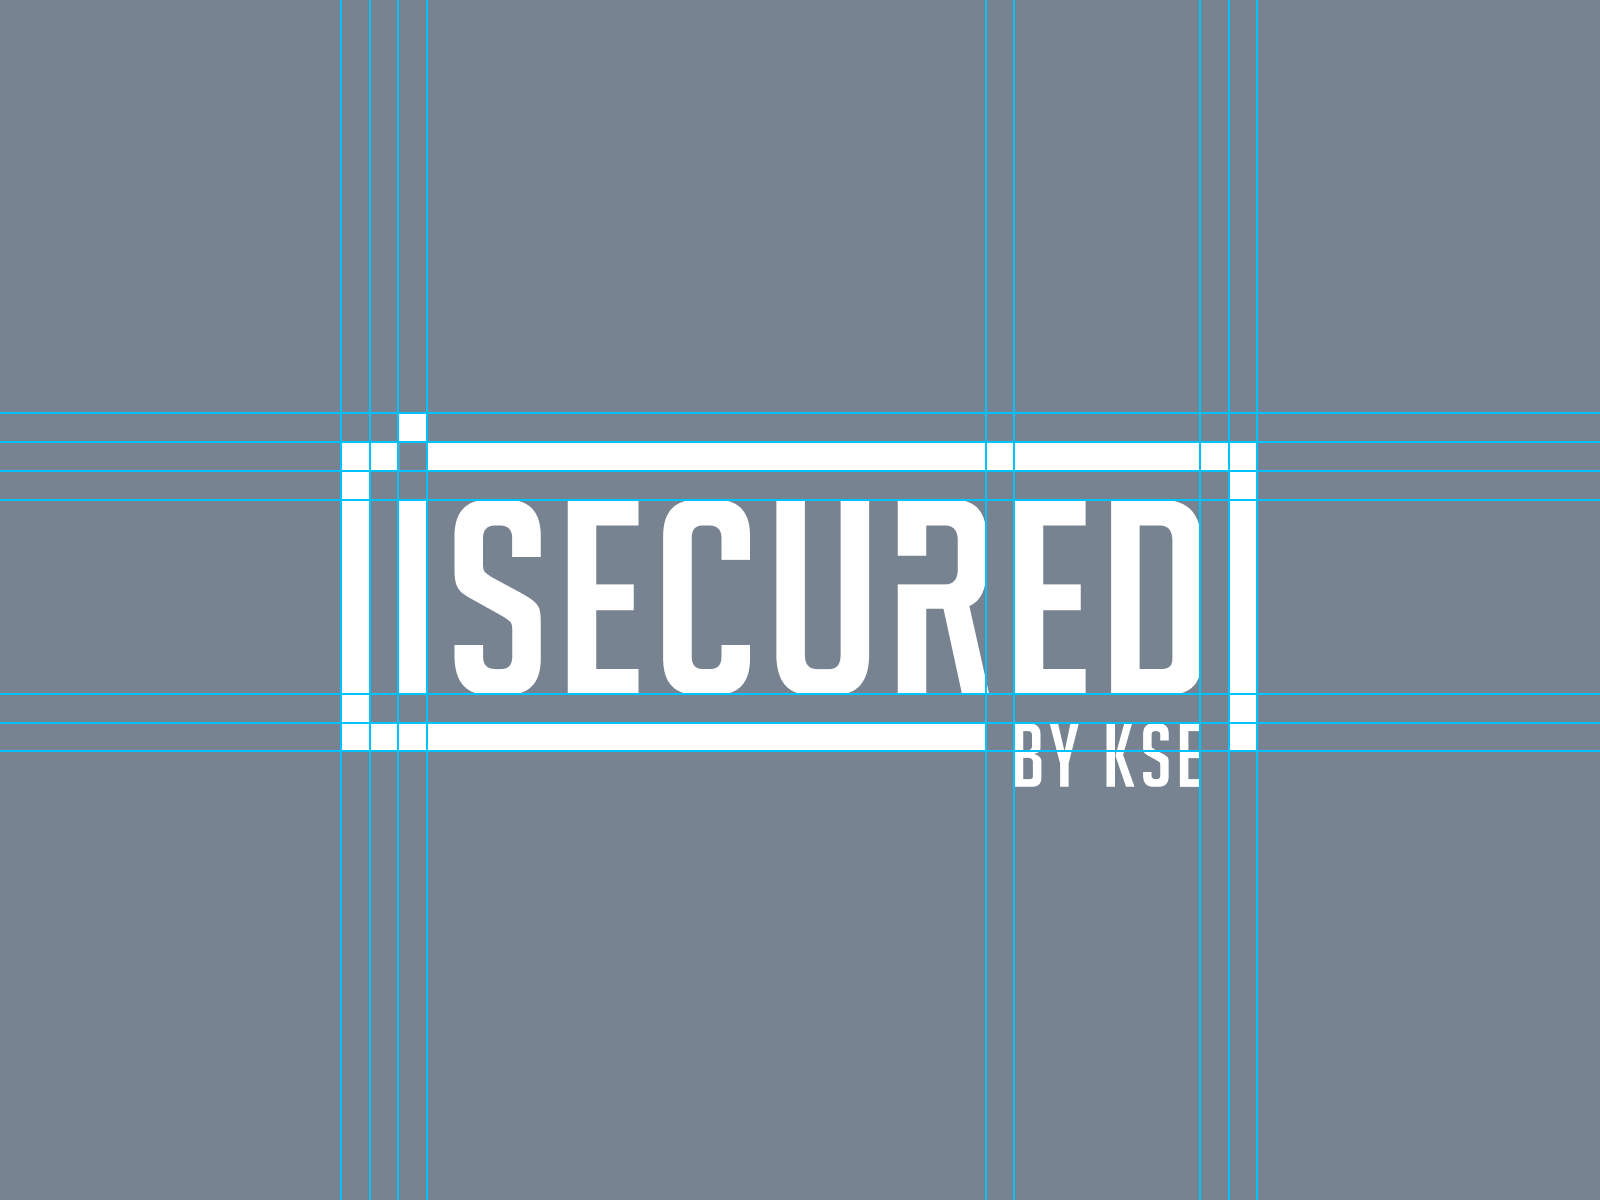 Logo Design for Security Company iSecured